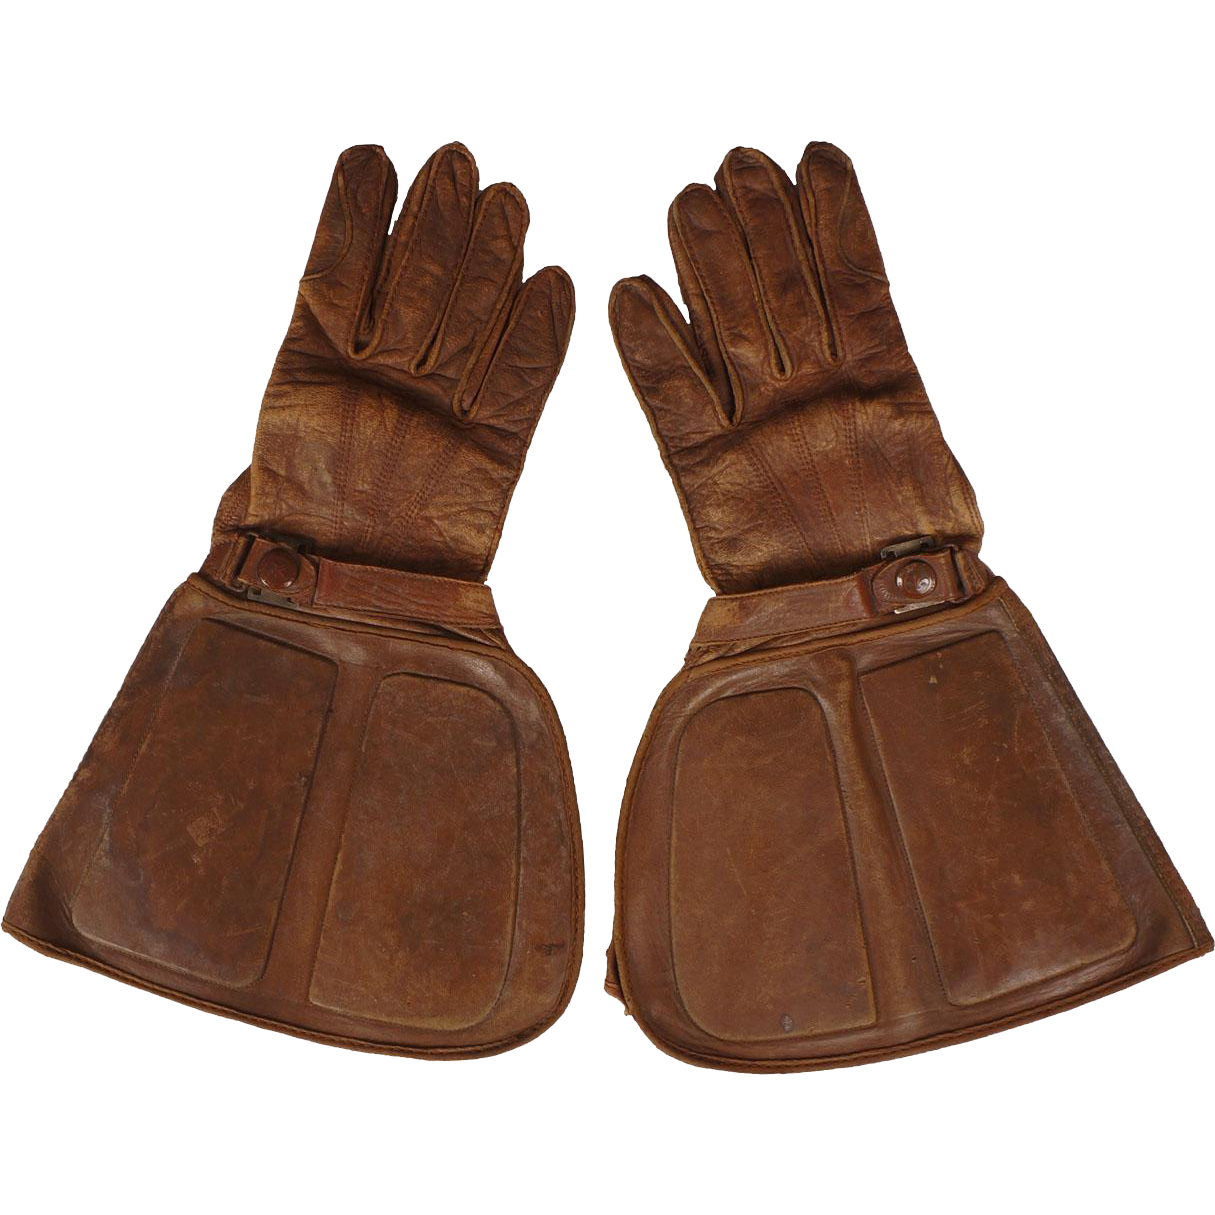 Motorcycle gloves singapore - Vintage 1920s Or 30s St Lawrence Motorcycle Gloves Gauntlet Style Quebec Size 8 5